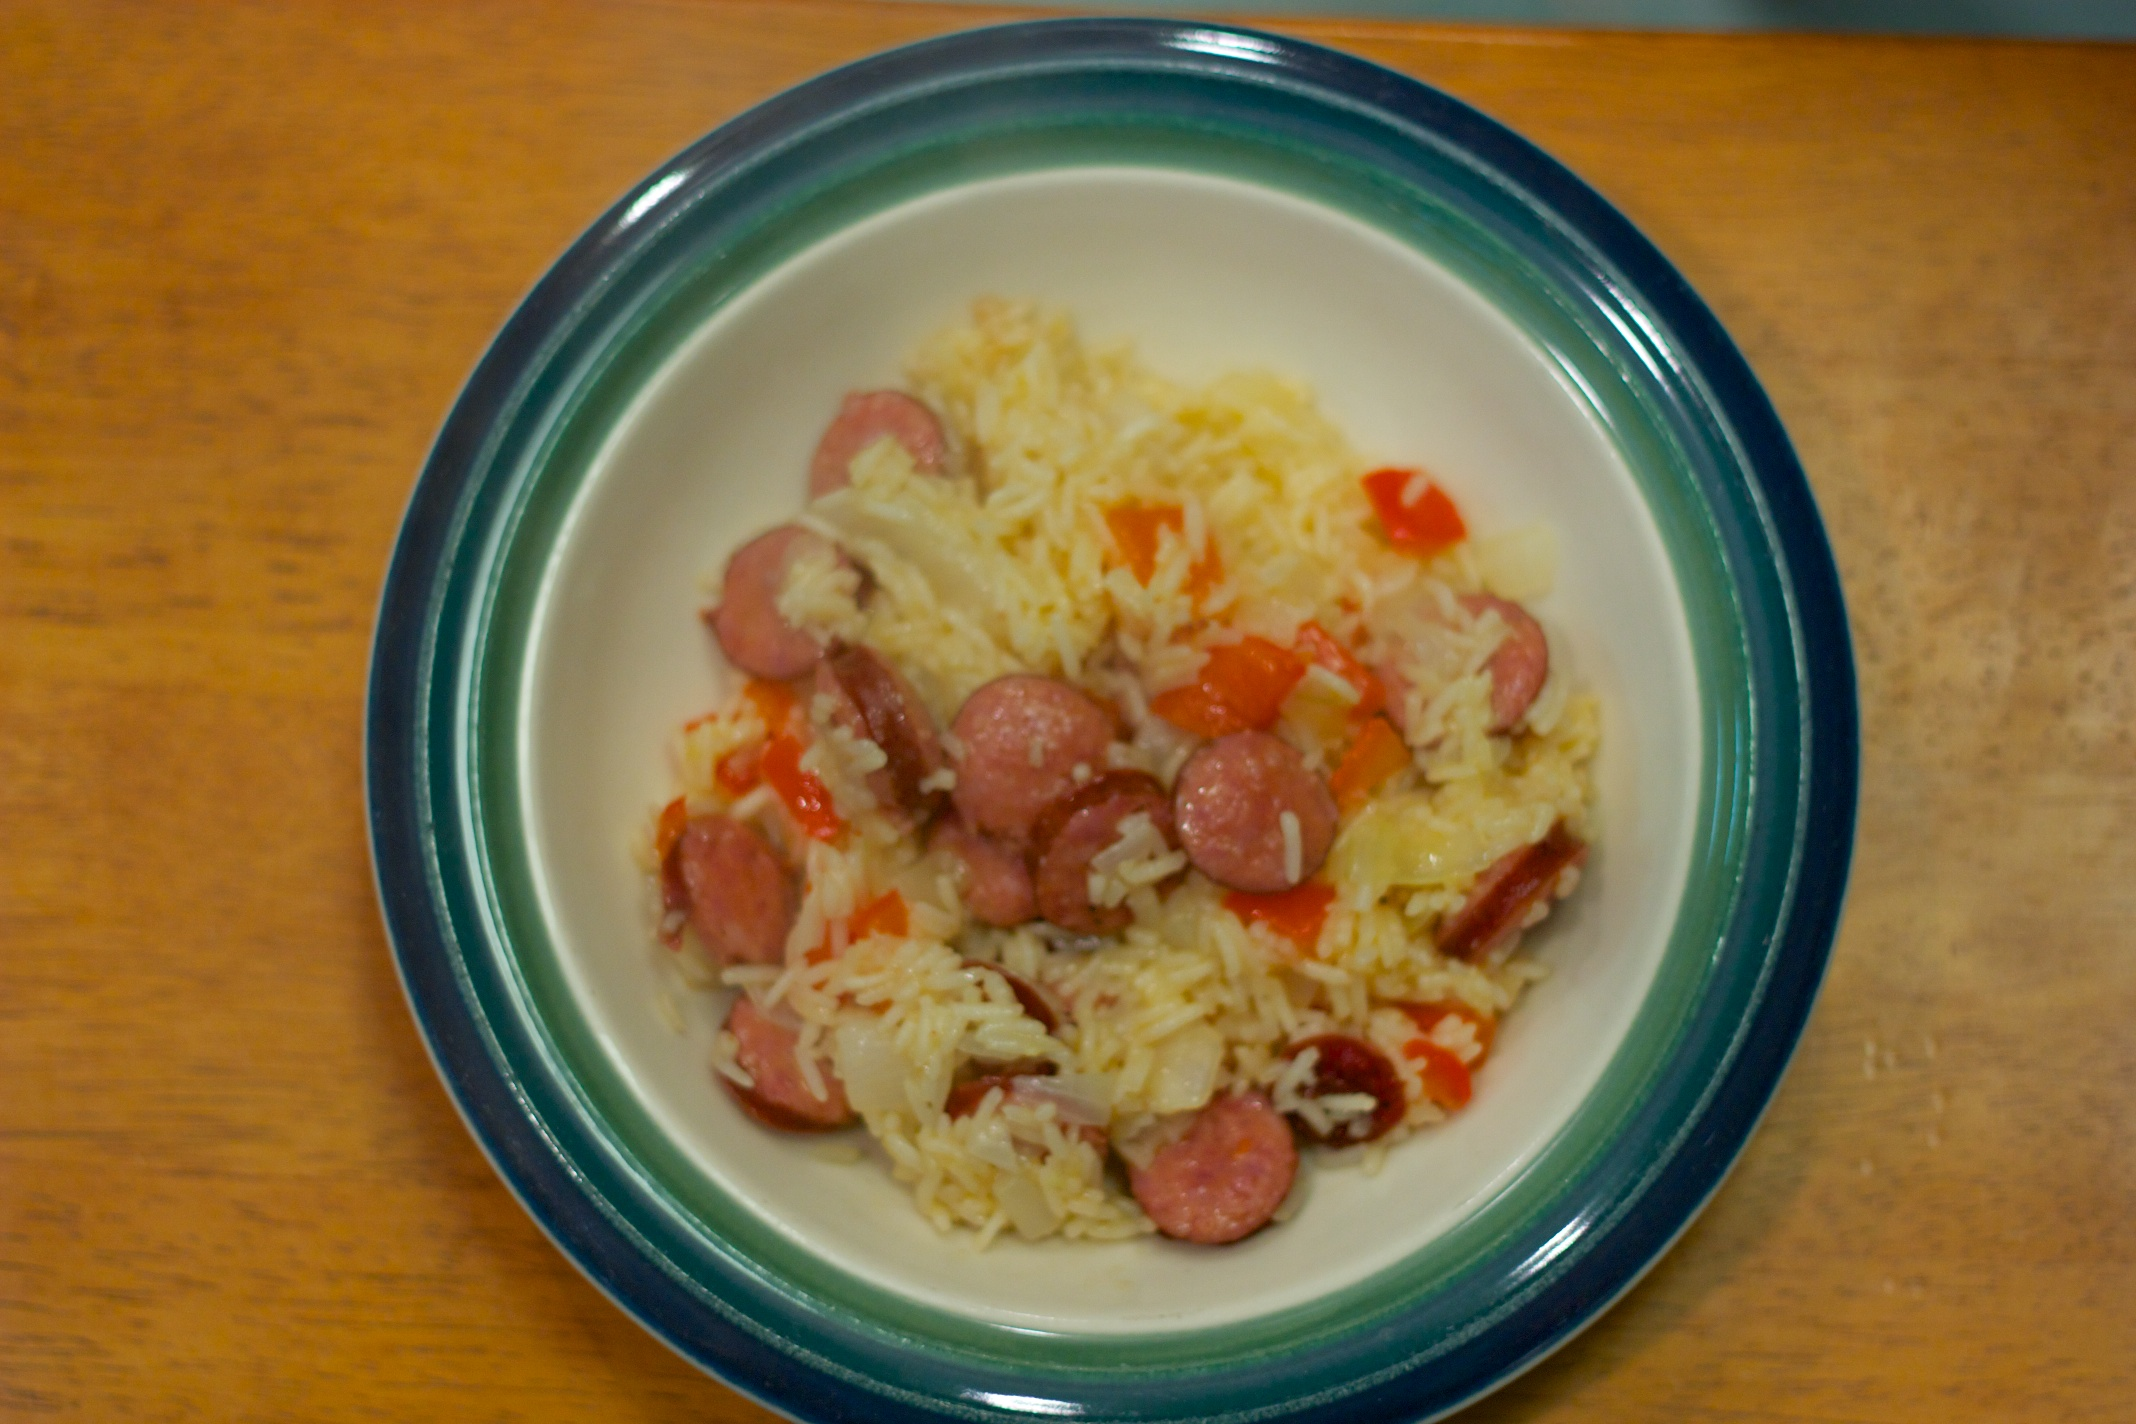 Tuesday Dinner: Andouille Sausage and Rice